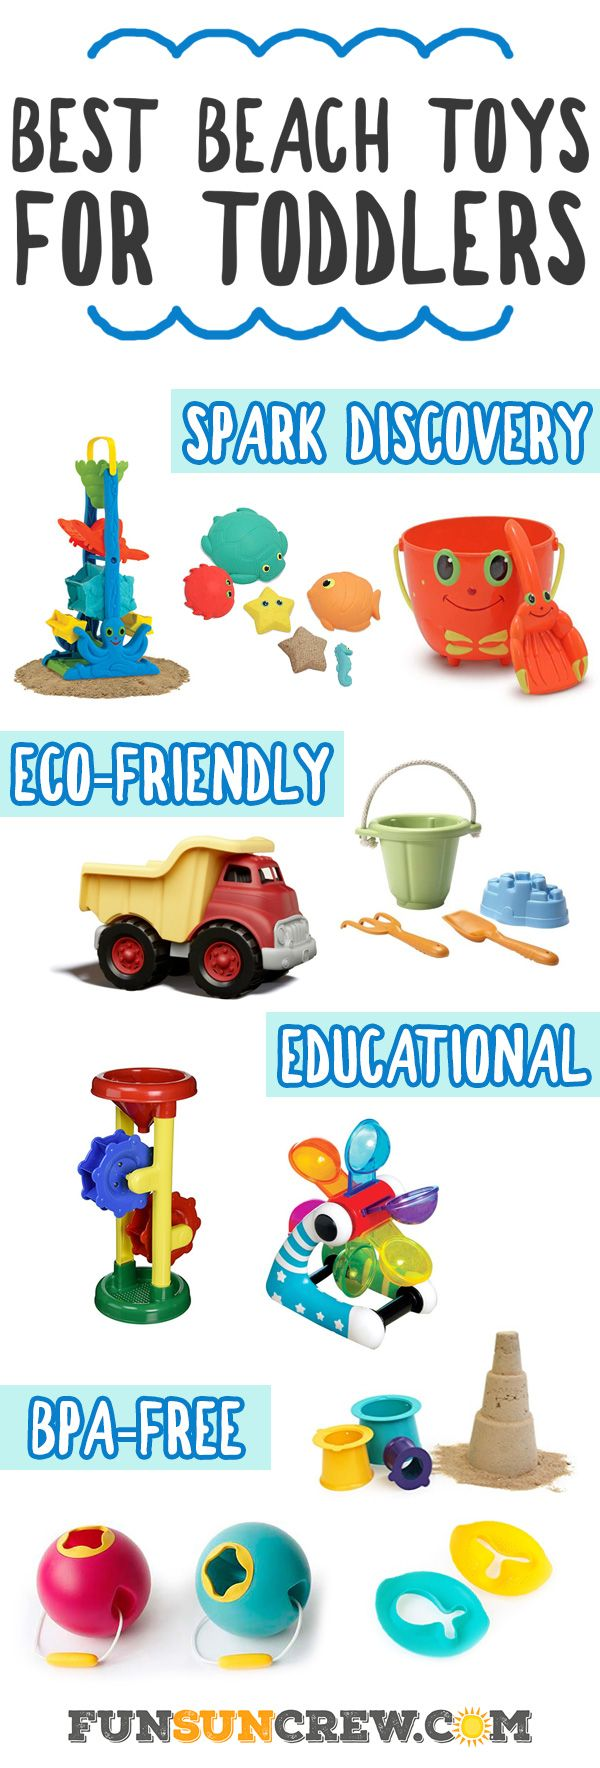 Looking for the best toddler beach toy? Here we list the best beach toys for toddlers from our favorite brands. These toys are safe, interactive and fun! - https://www.funsuncrew.com